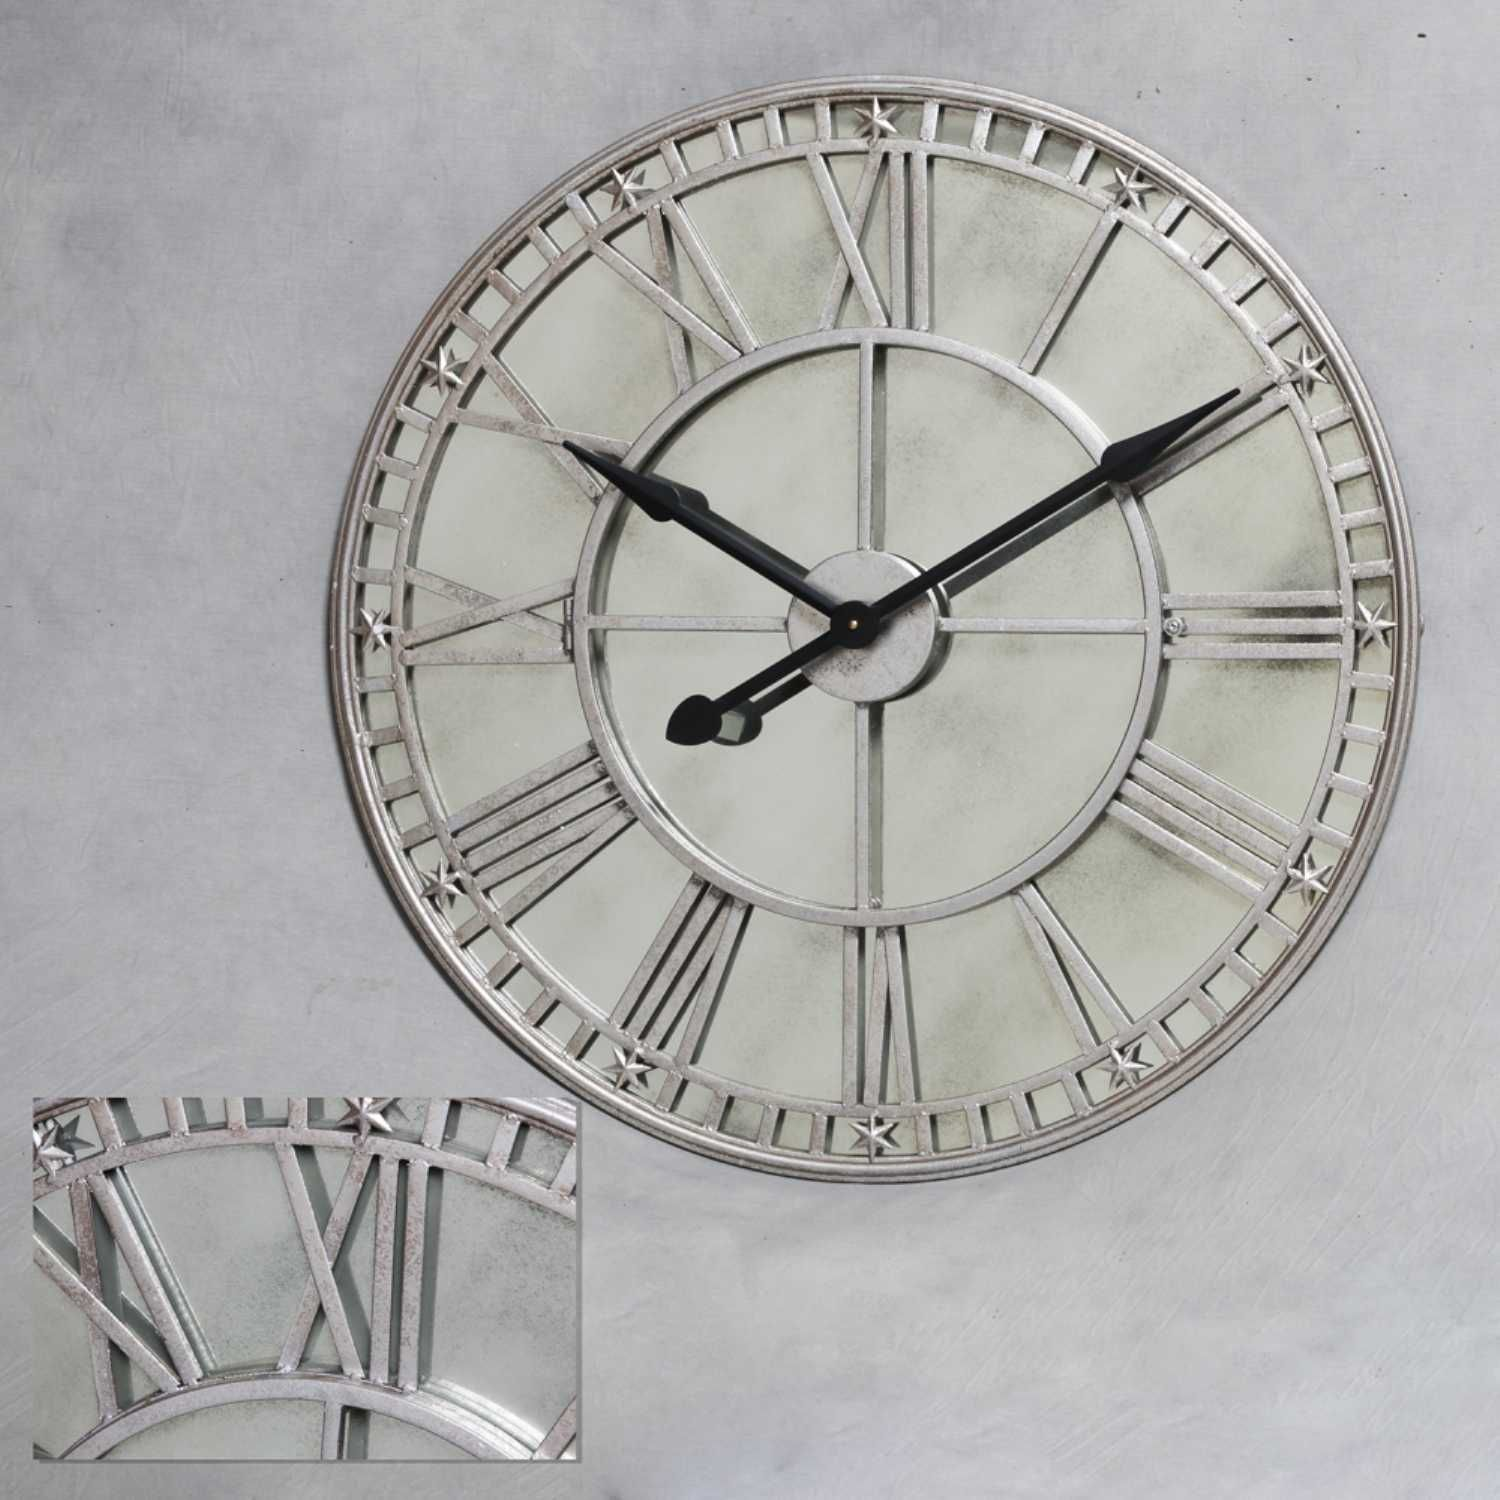 Statement Wall Clocks London Large Round Silver Wall Clock With Antiqued Mirror